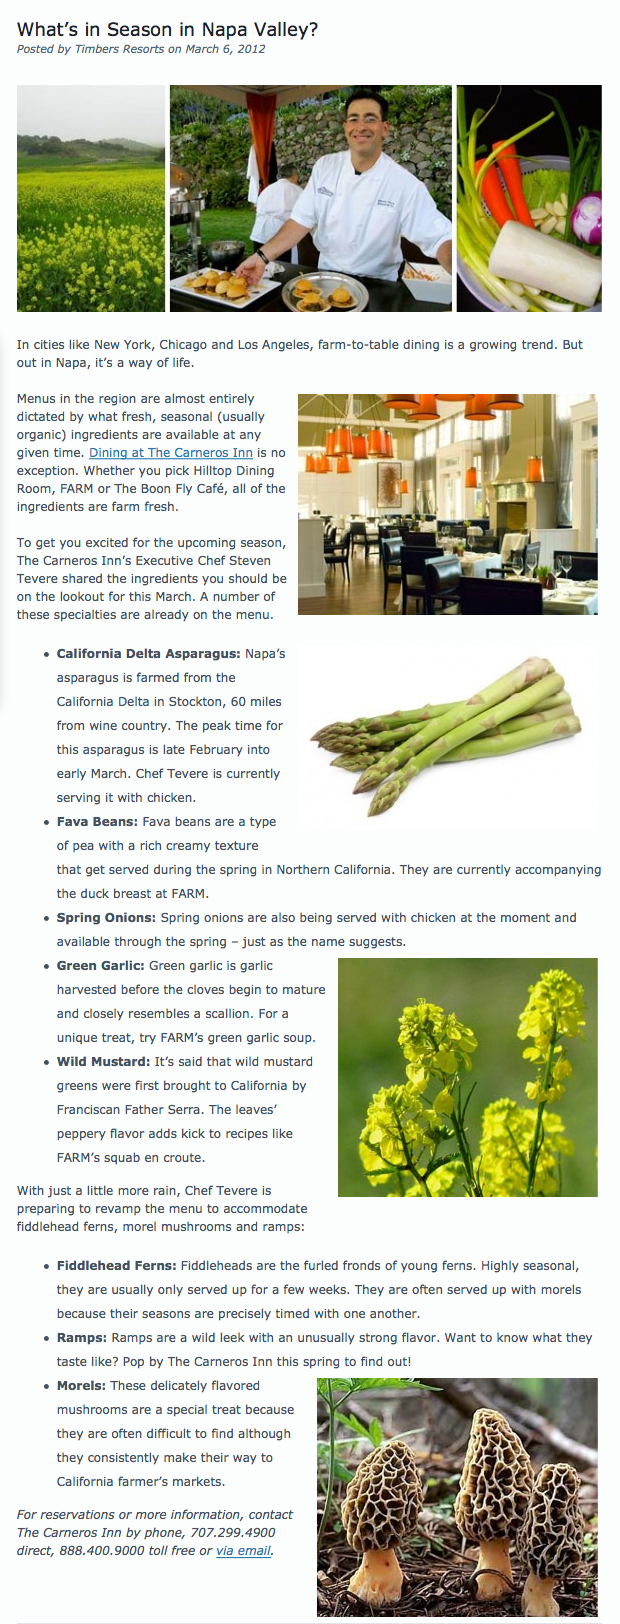 What's in Season in Napa Valley